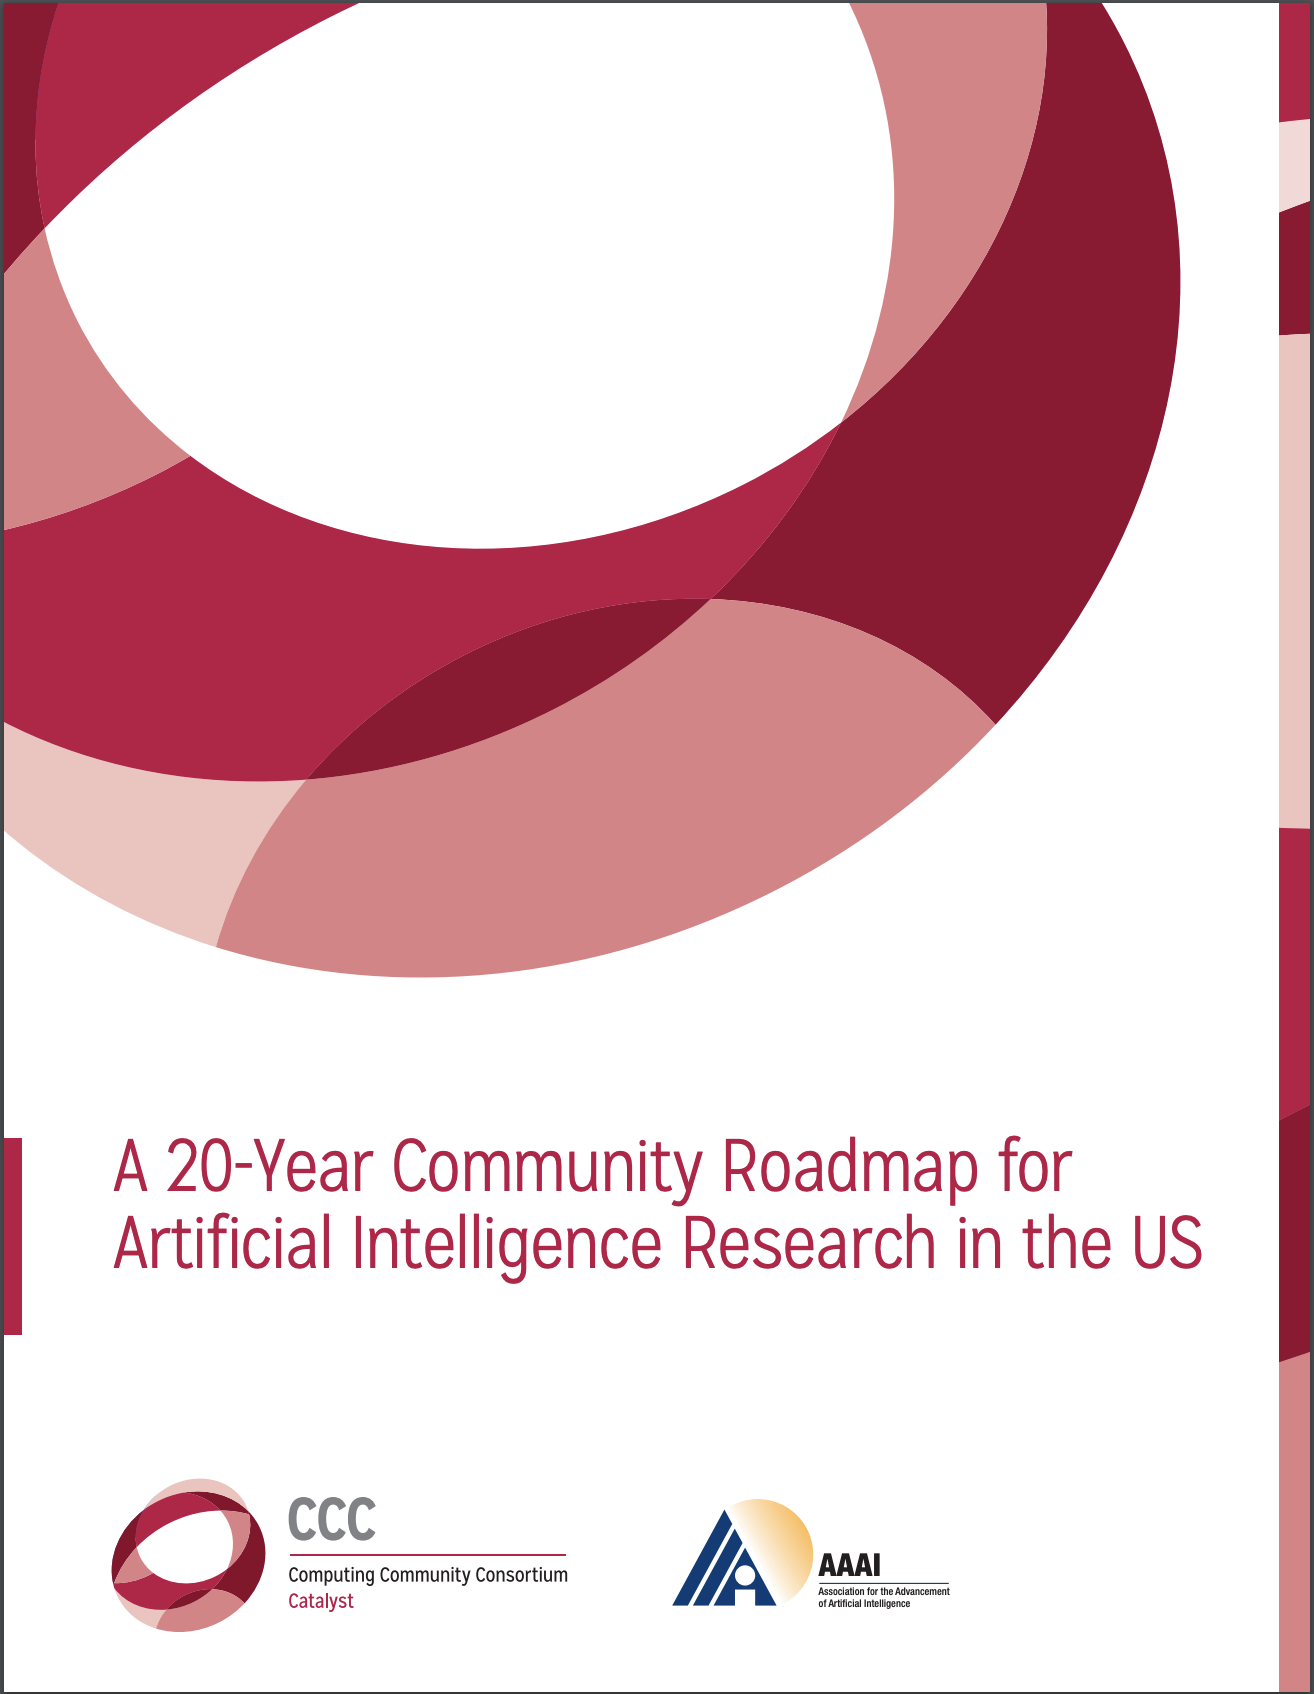 A 20-Year Community Roadmap for AI Research in the US is Released